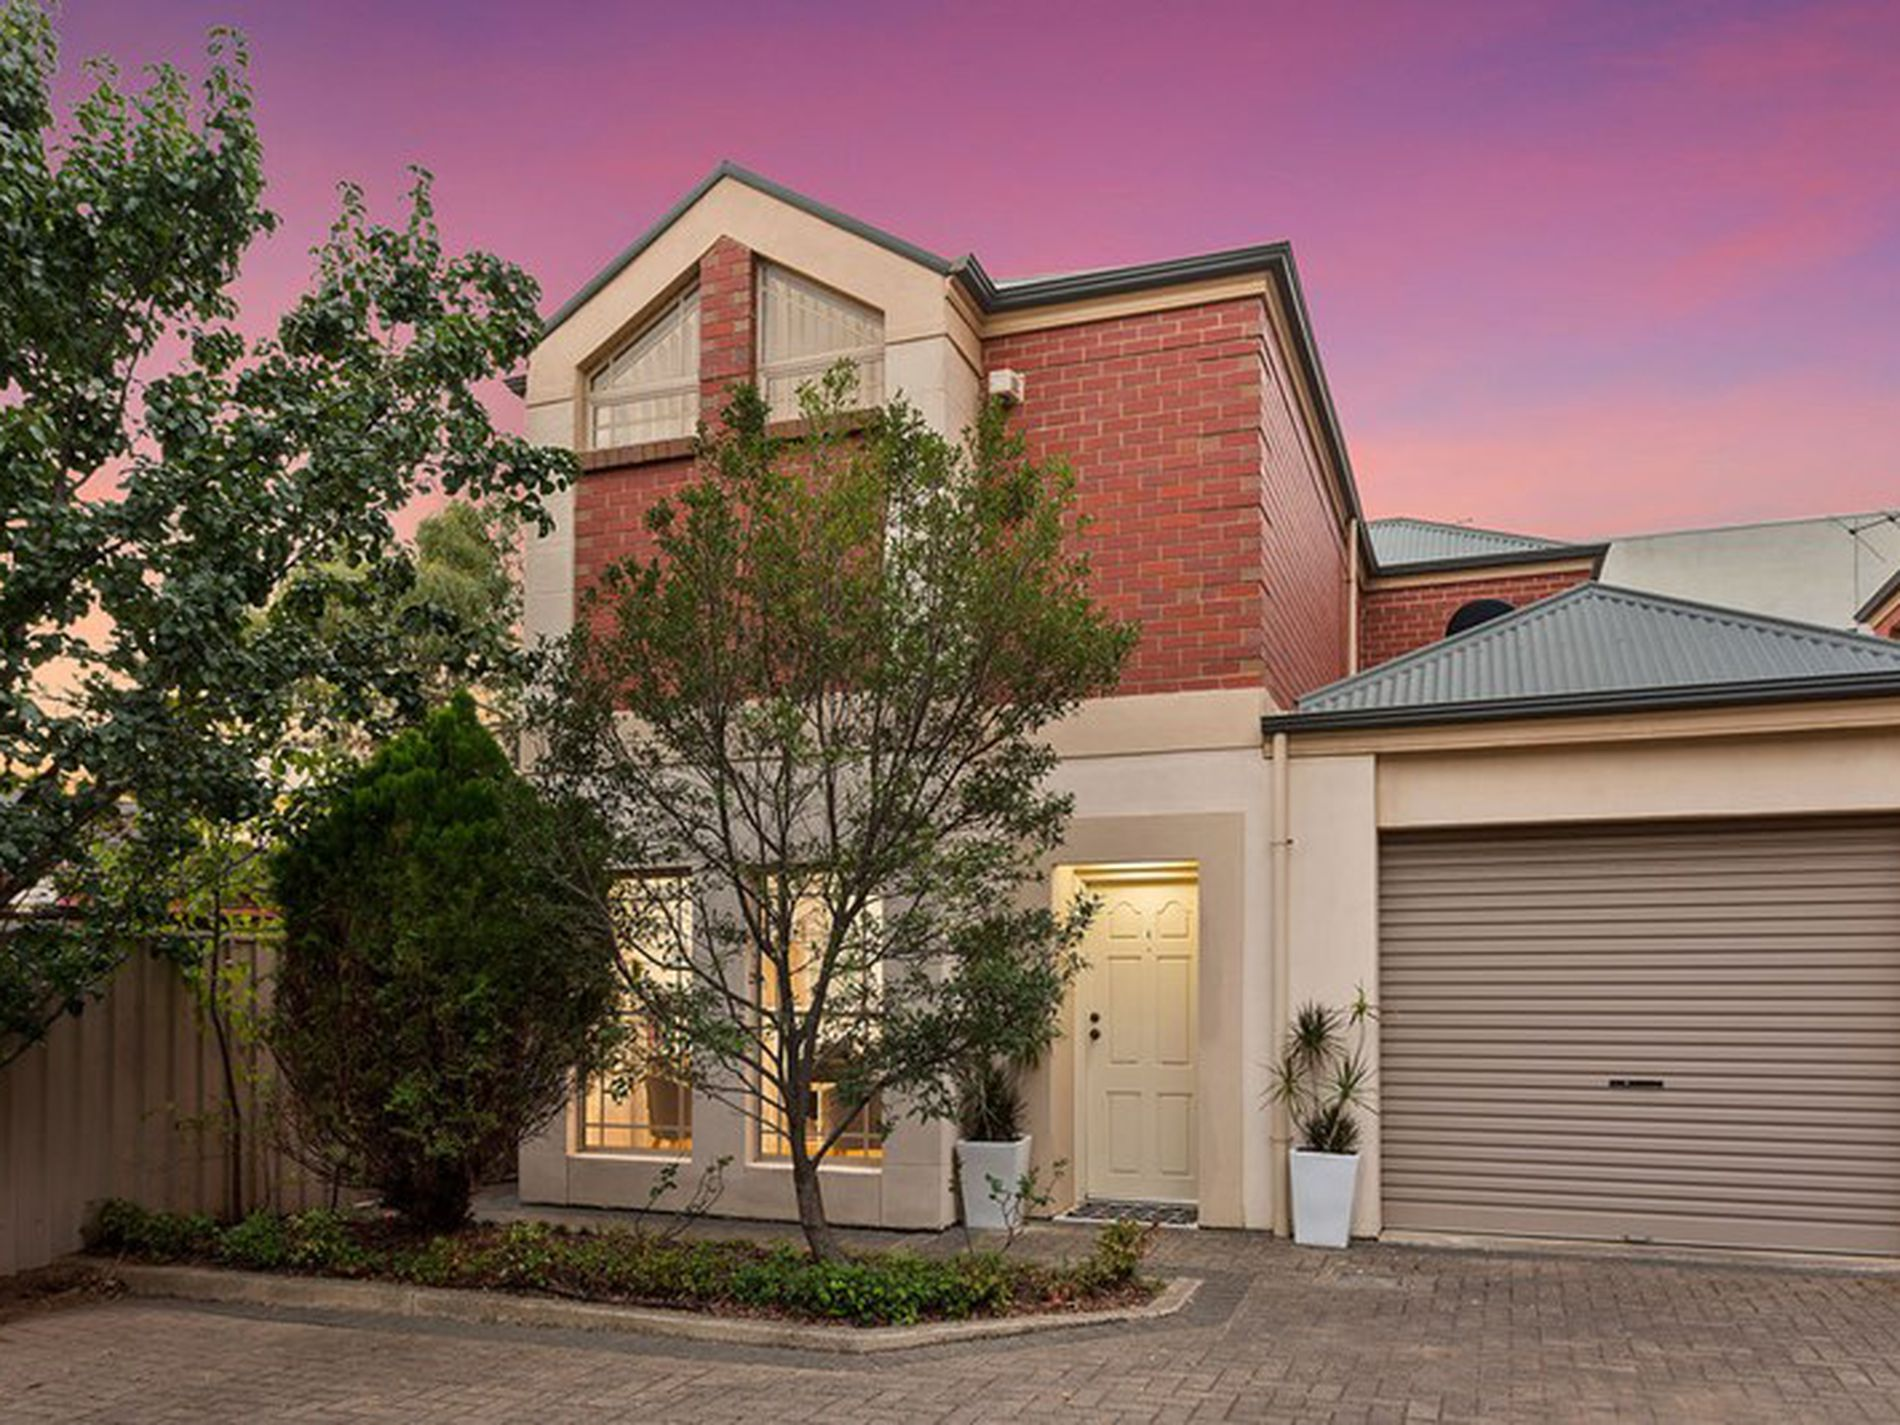 4 / 122 Rose Terrace, Wayville